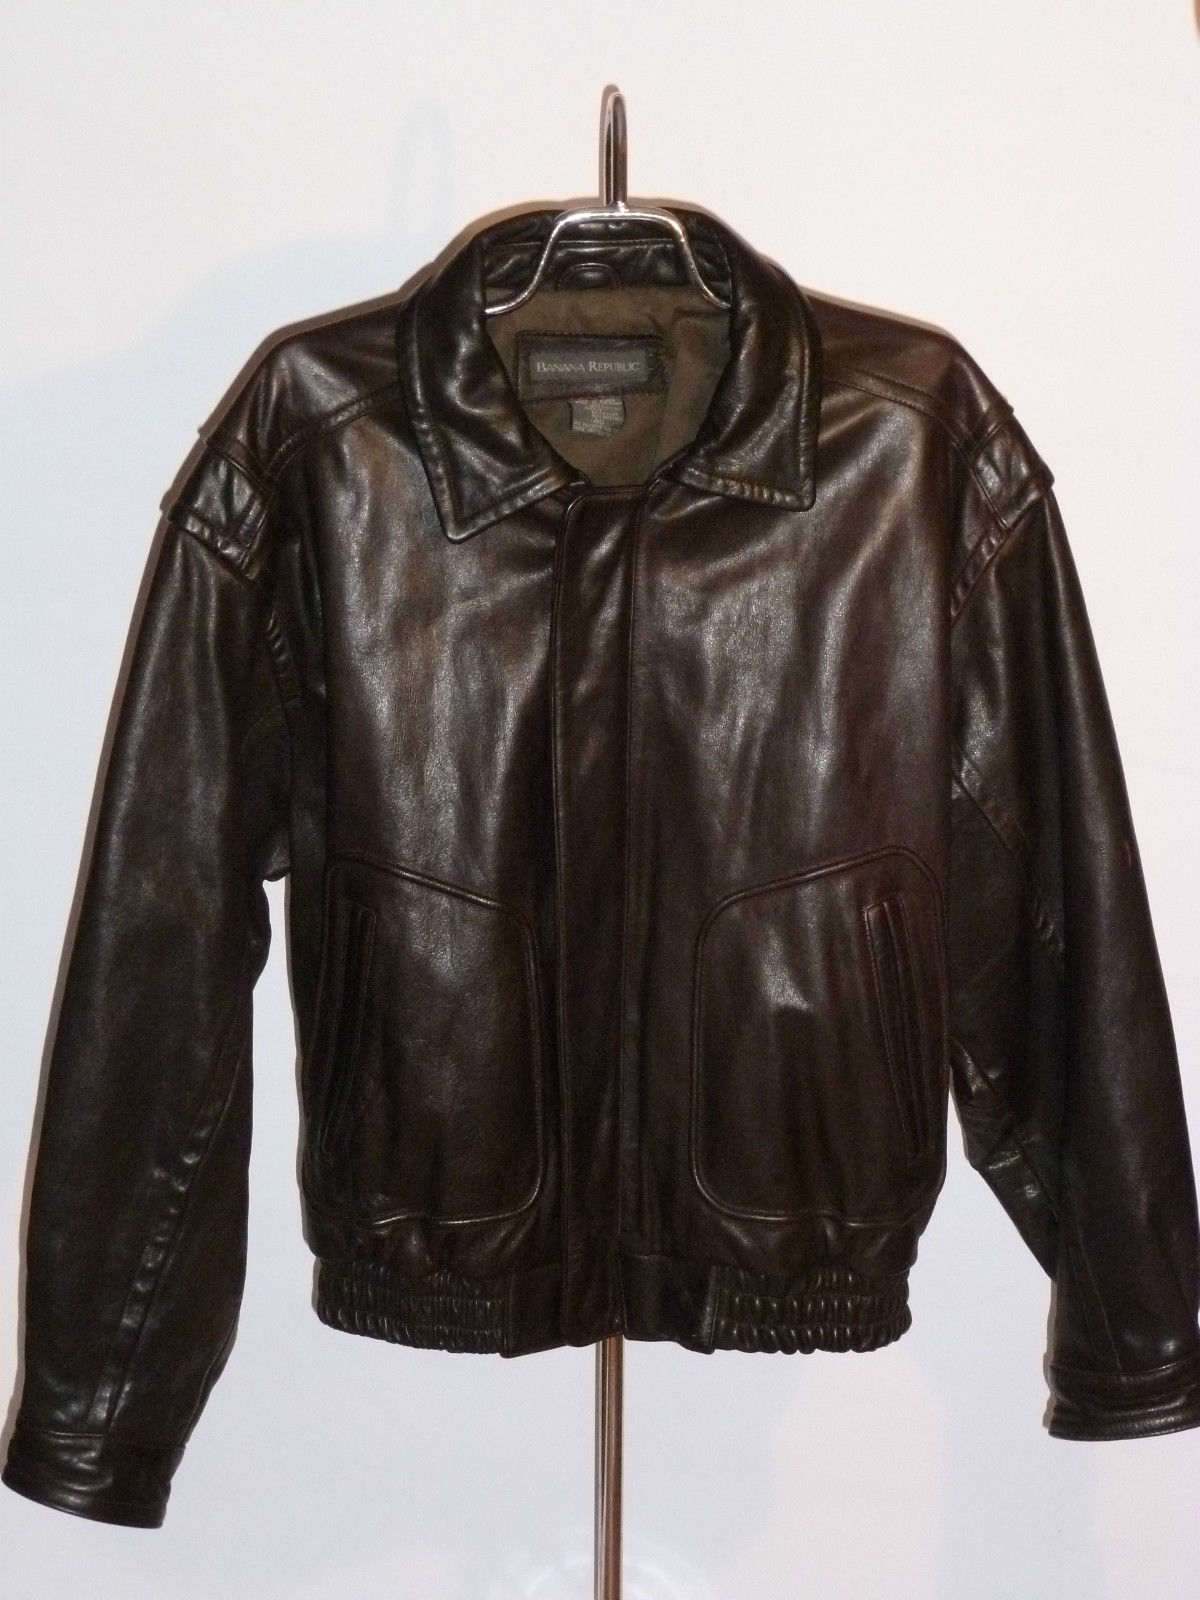 Men's Banana Republic Jackets Bought by Gap in , Banana Republic started as an independent retailer selling reworked military uniforms and tailored casualwear before it received a .